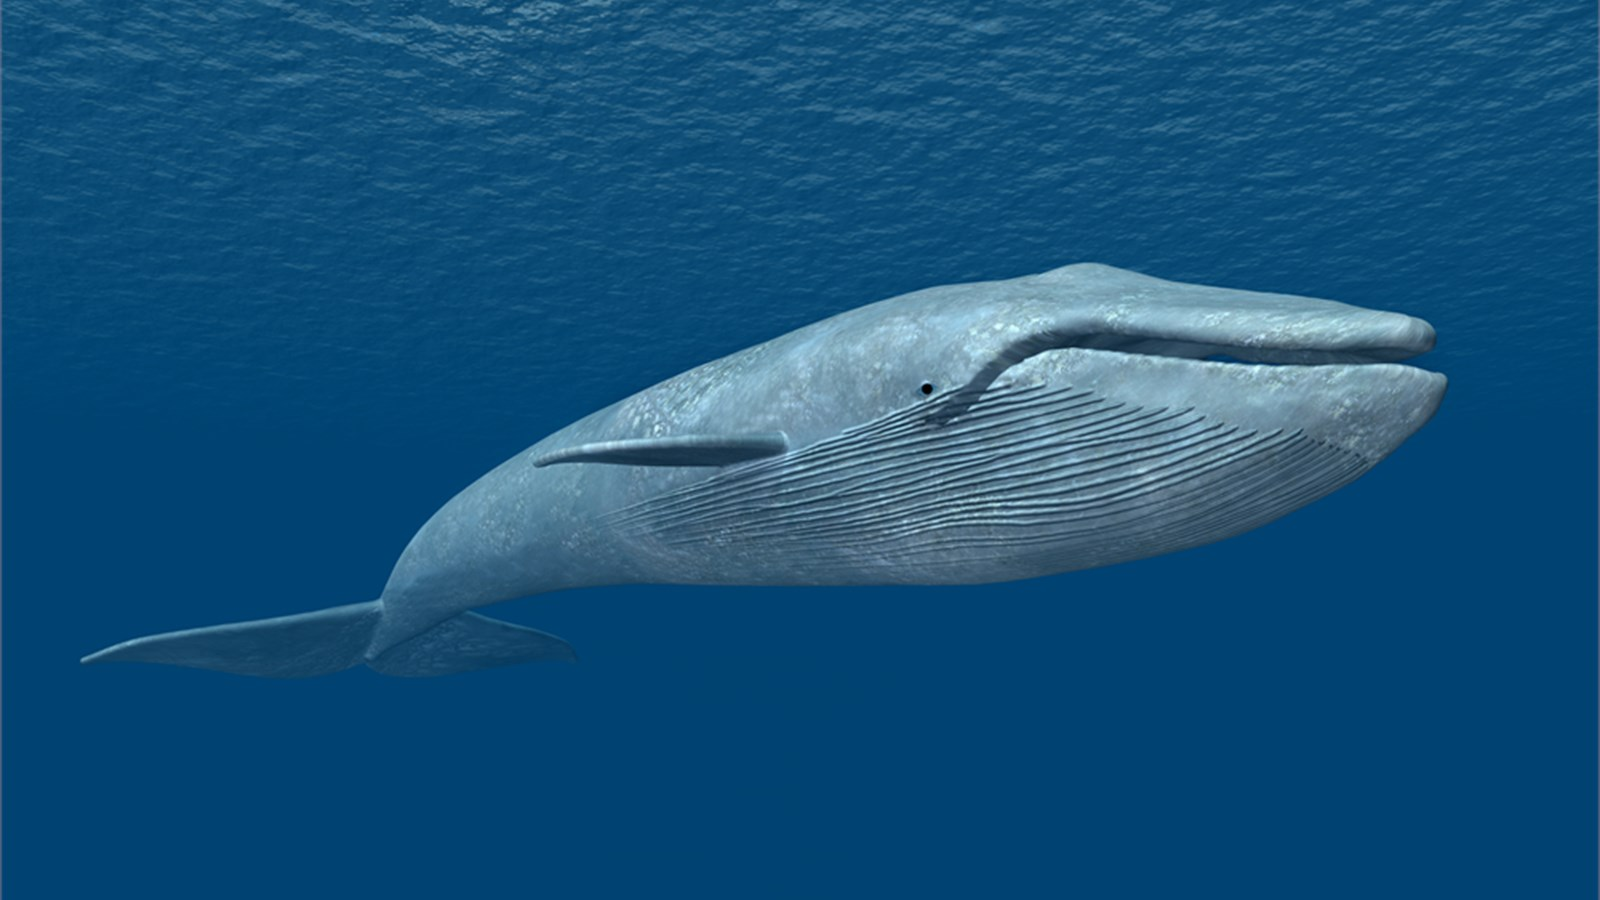 Blue Whale Facts, History, Useful Information and Amazing Pictures